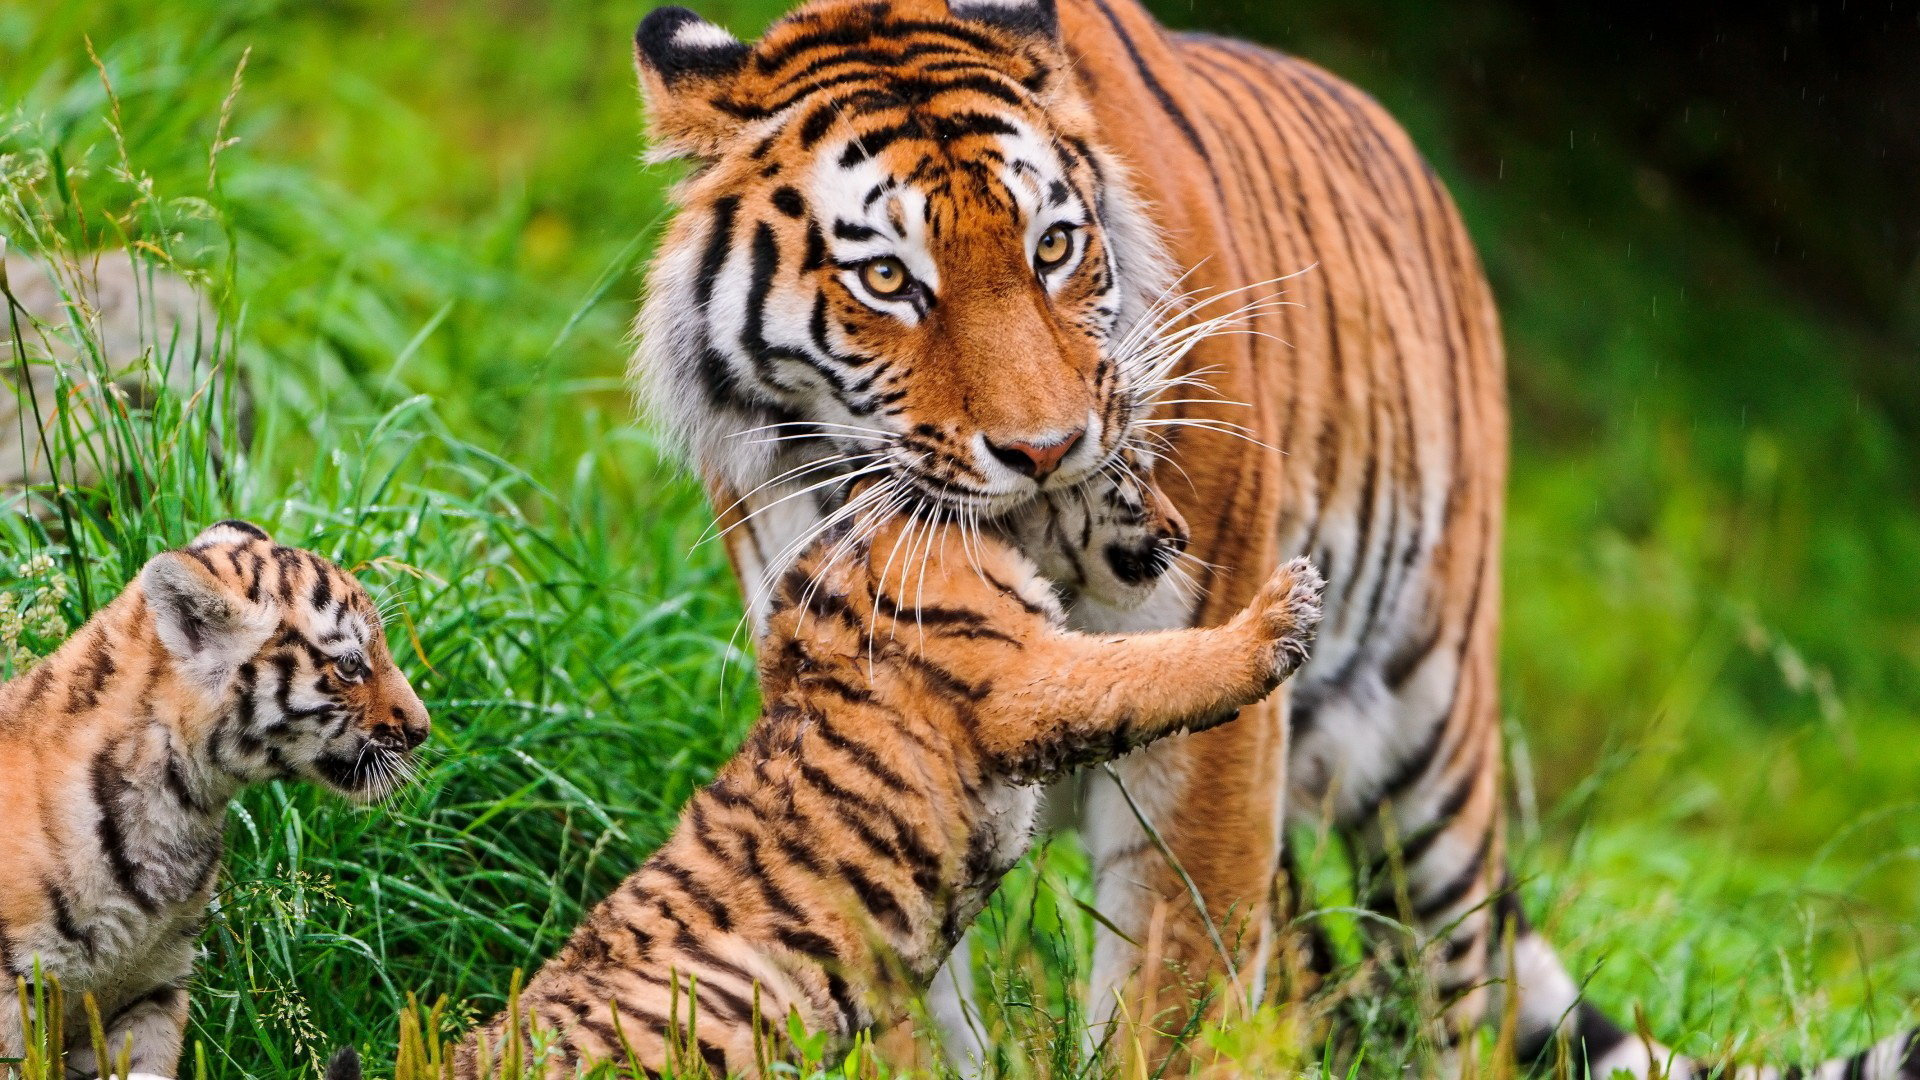 Download Hd 1920x1080 Tiger Desktop Background Id 115677 For Free